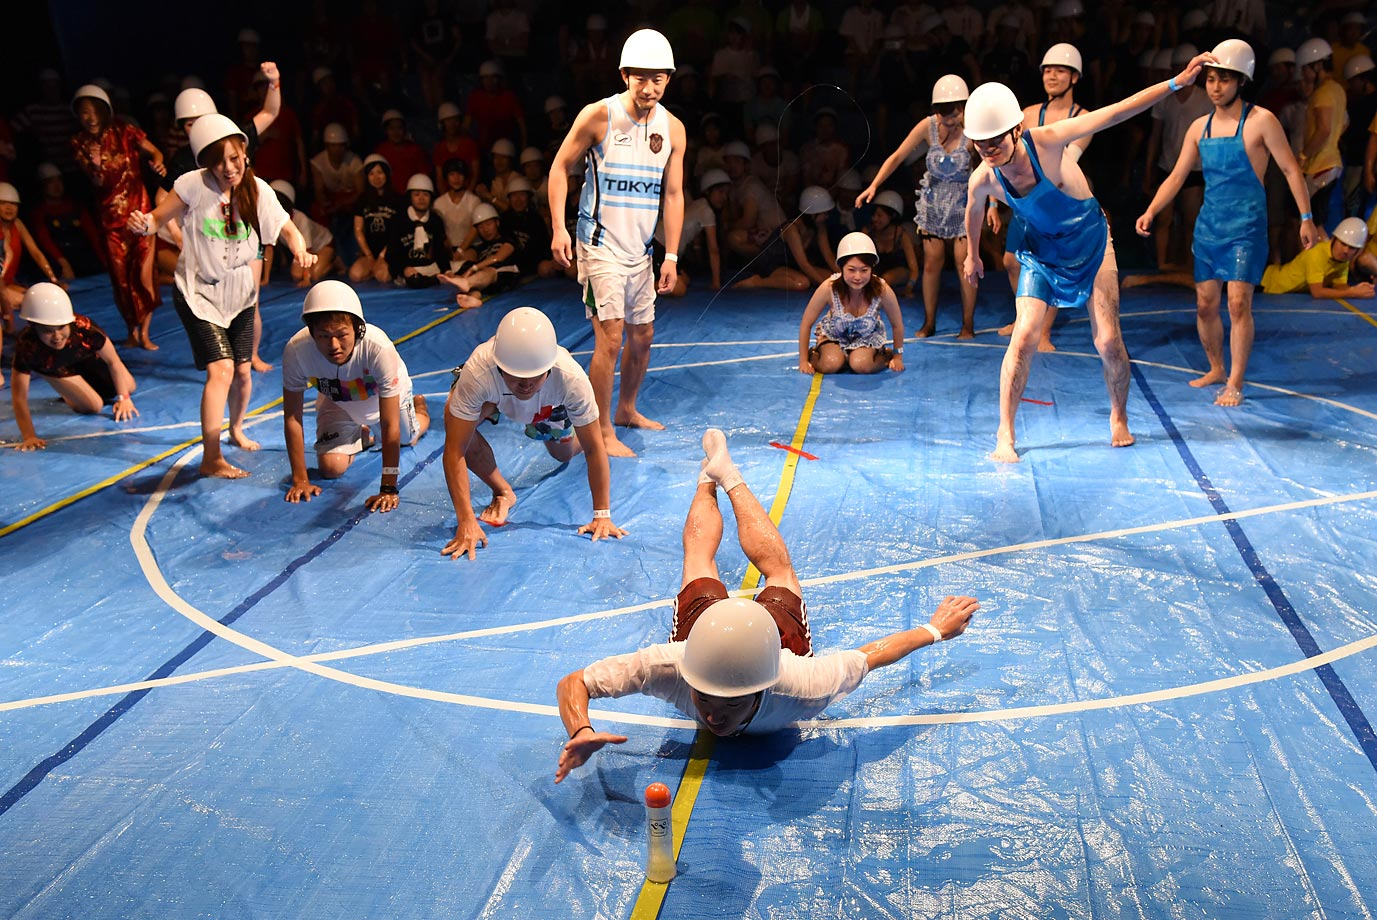 Contestants rush to catch a plastic bottle as they compete in the 'Lube Olympics' in Tokyo.